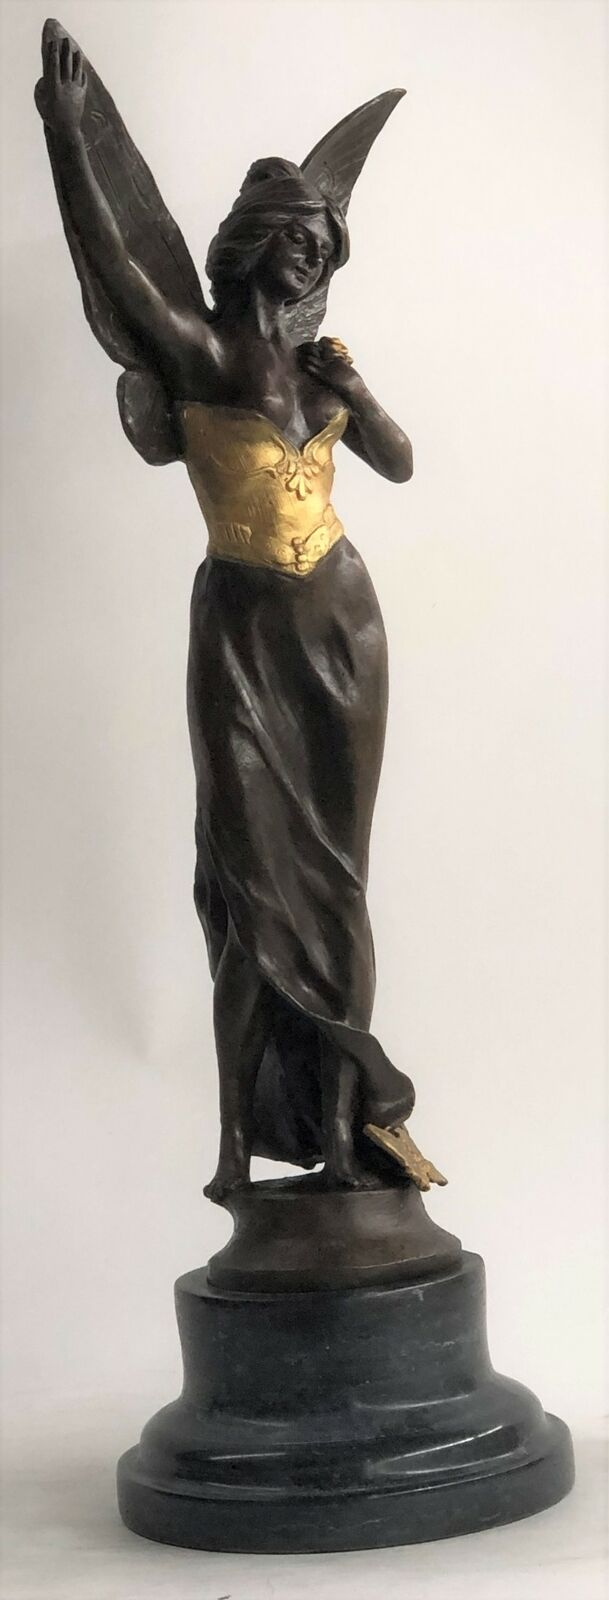 SUPER DEAL Large Charming Angel Standing Bronze Marble Sculpture Deco Ef